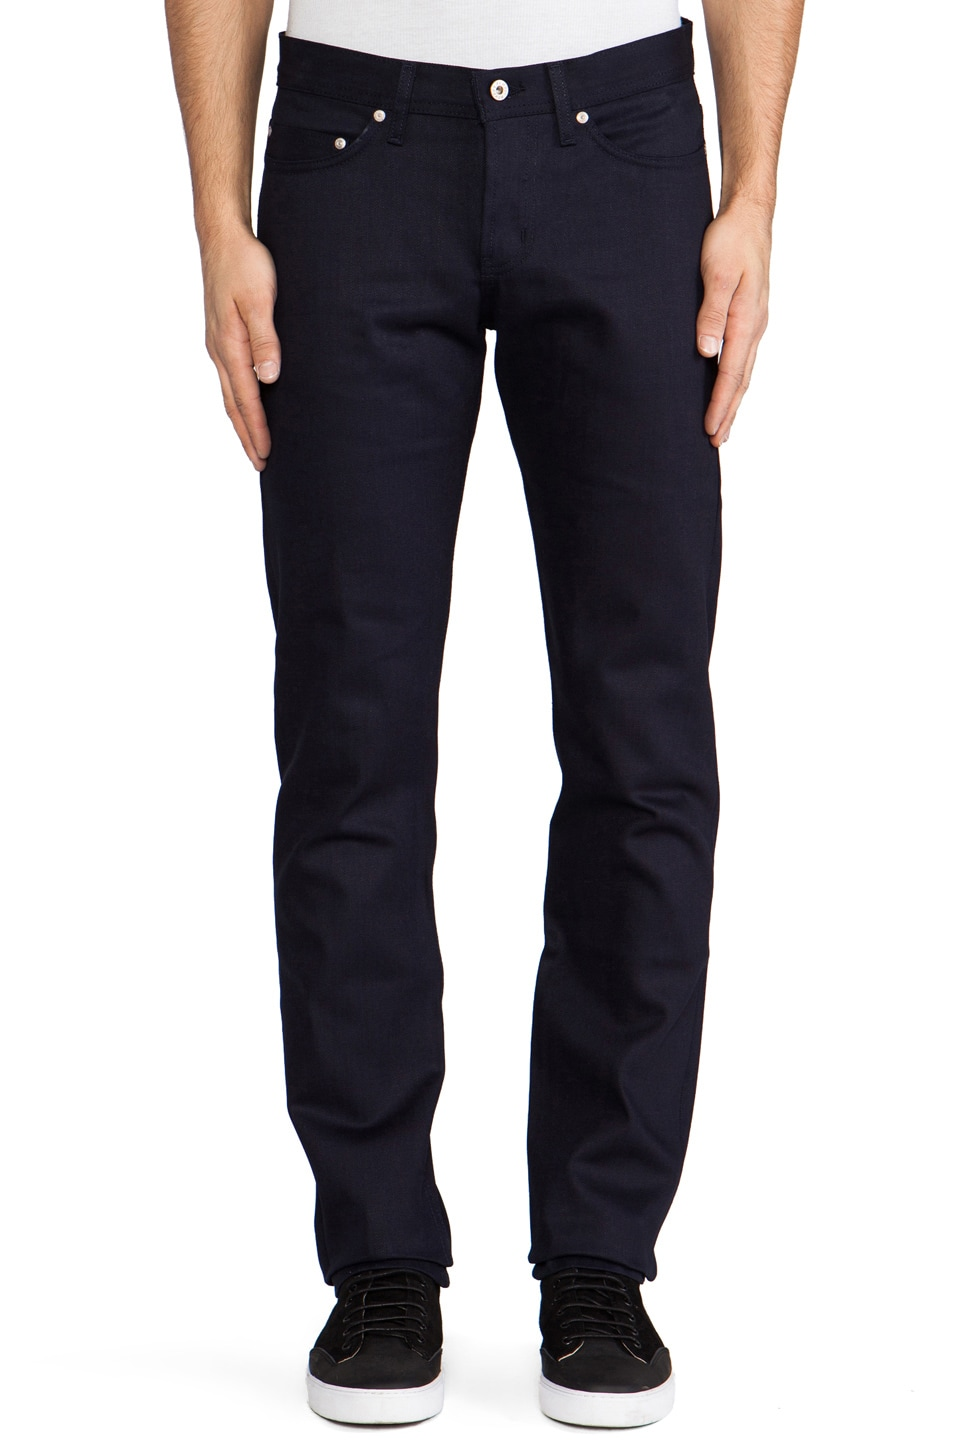 Naked & Famous Denim Weird Guy Midnight Selvedge 13 oz. in Indigo/Black